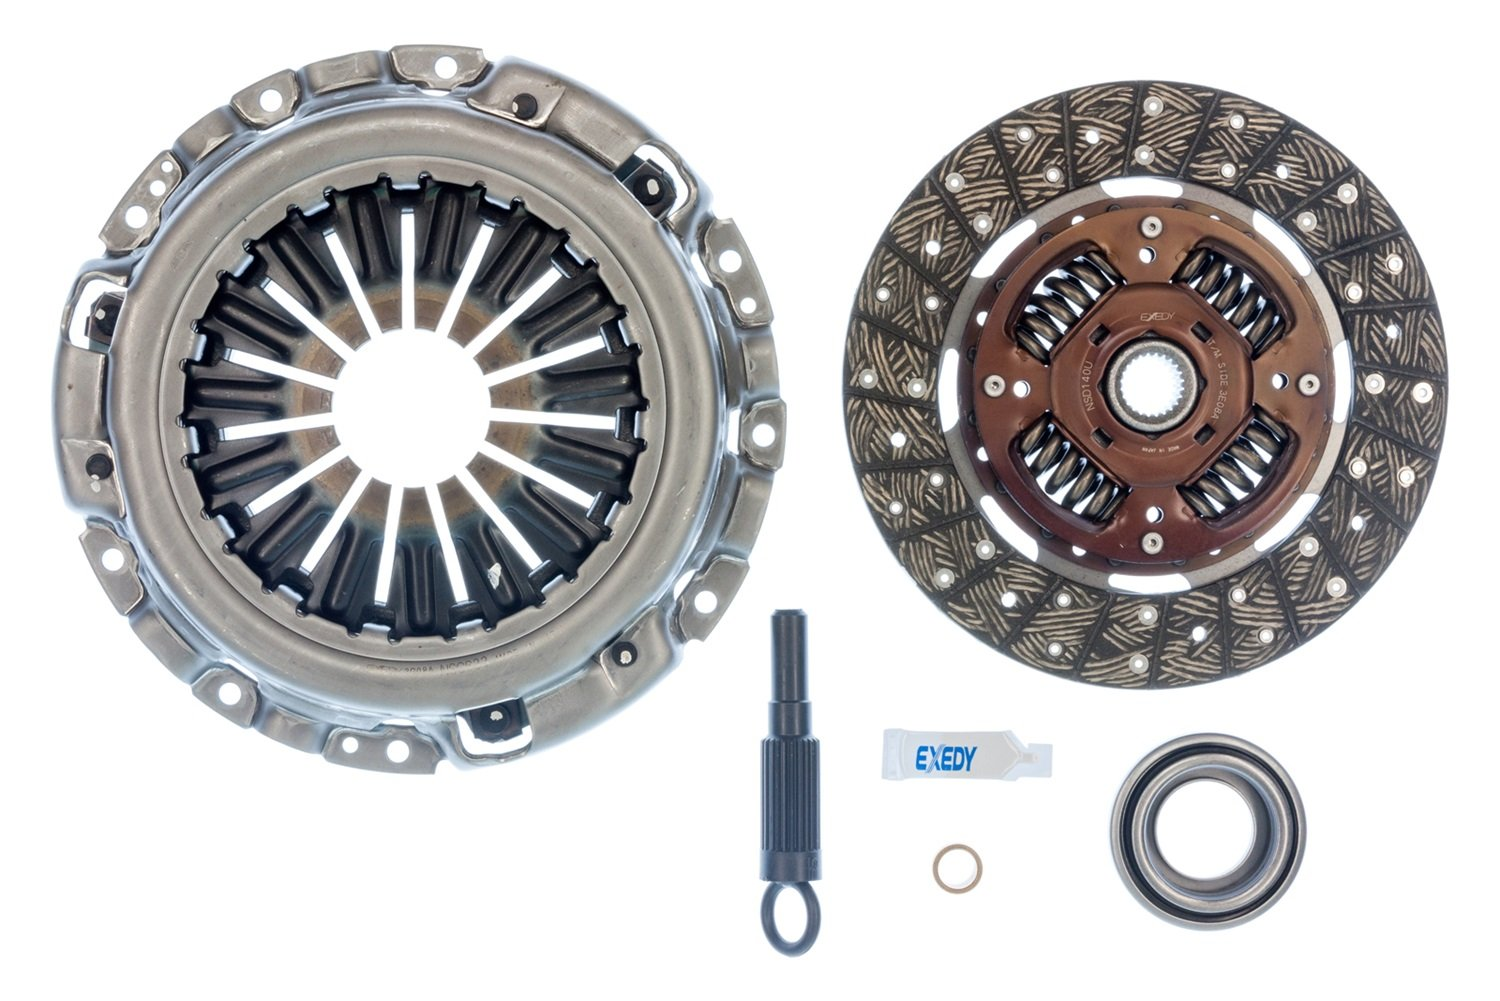 EXEDY NSK1000 OEM Replacement Clutch Kit by Exedy (Image #1)